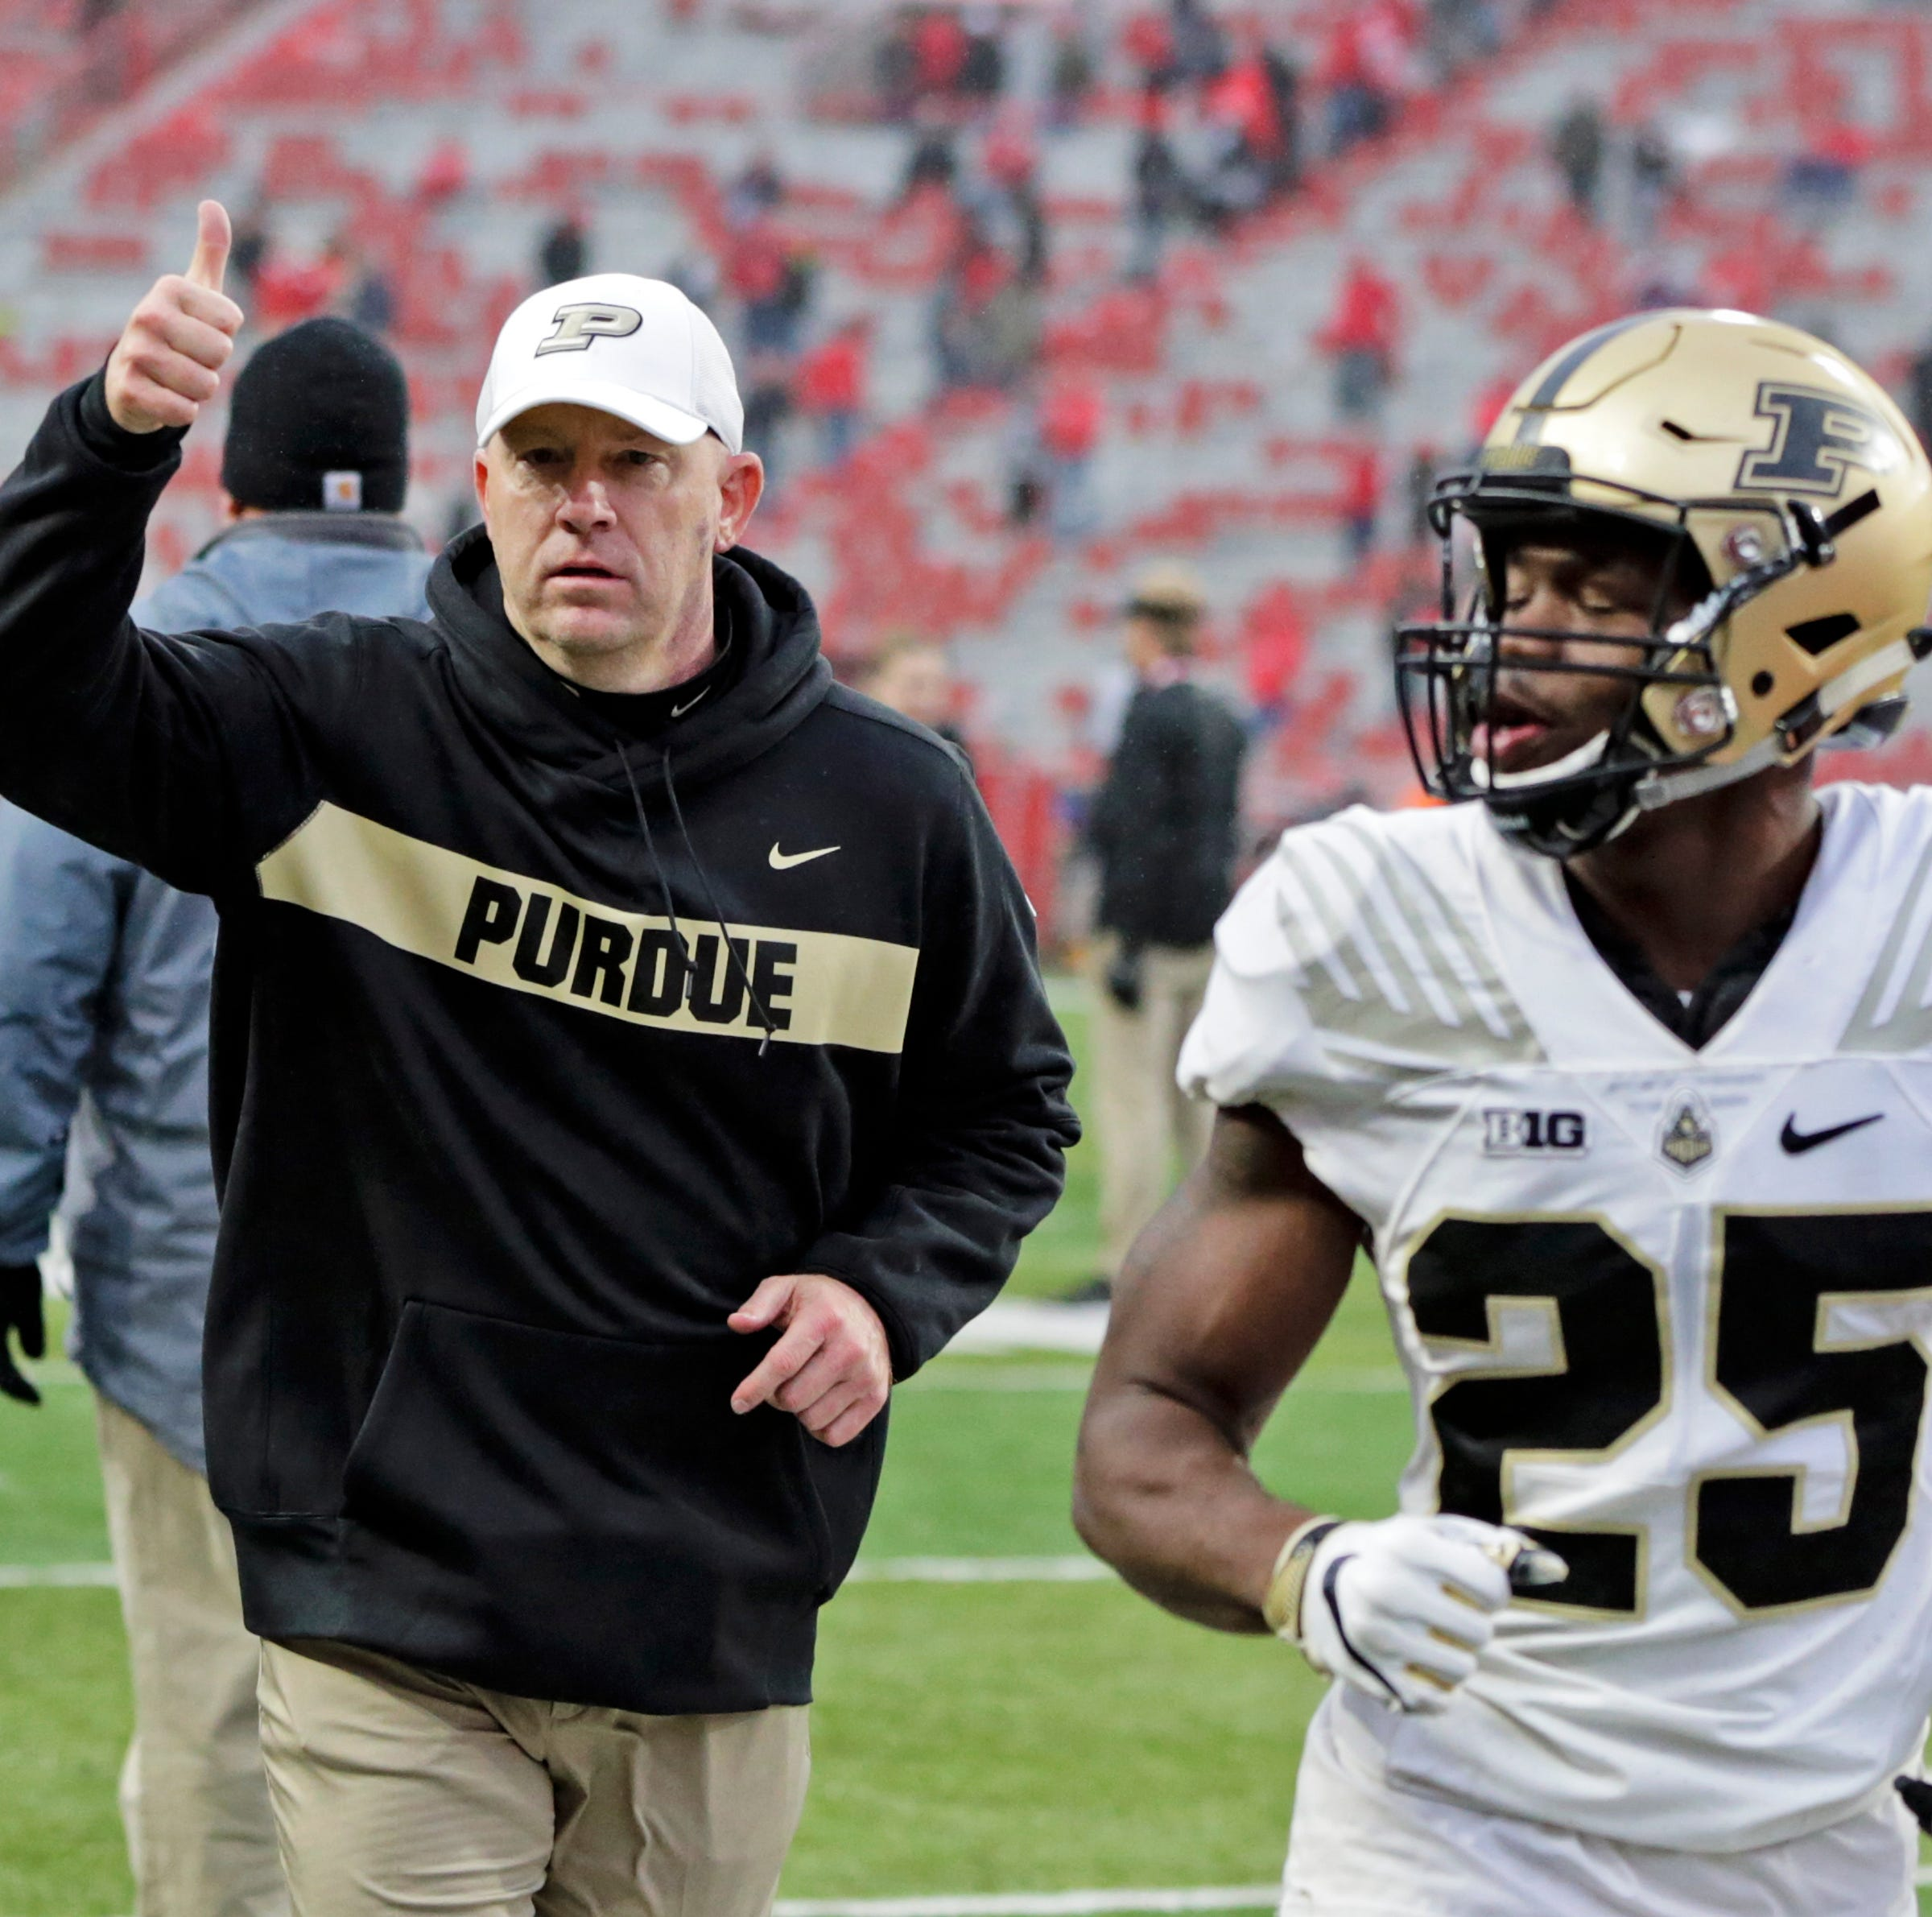 5 things you may not have known about Louisville native Jeff Brohm